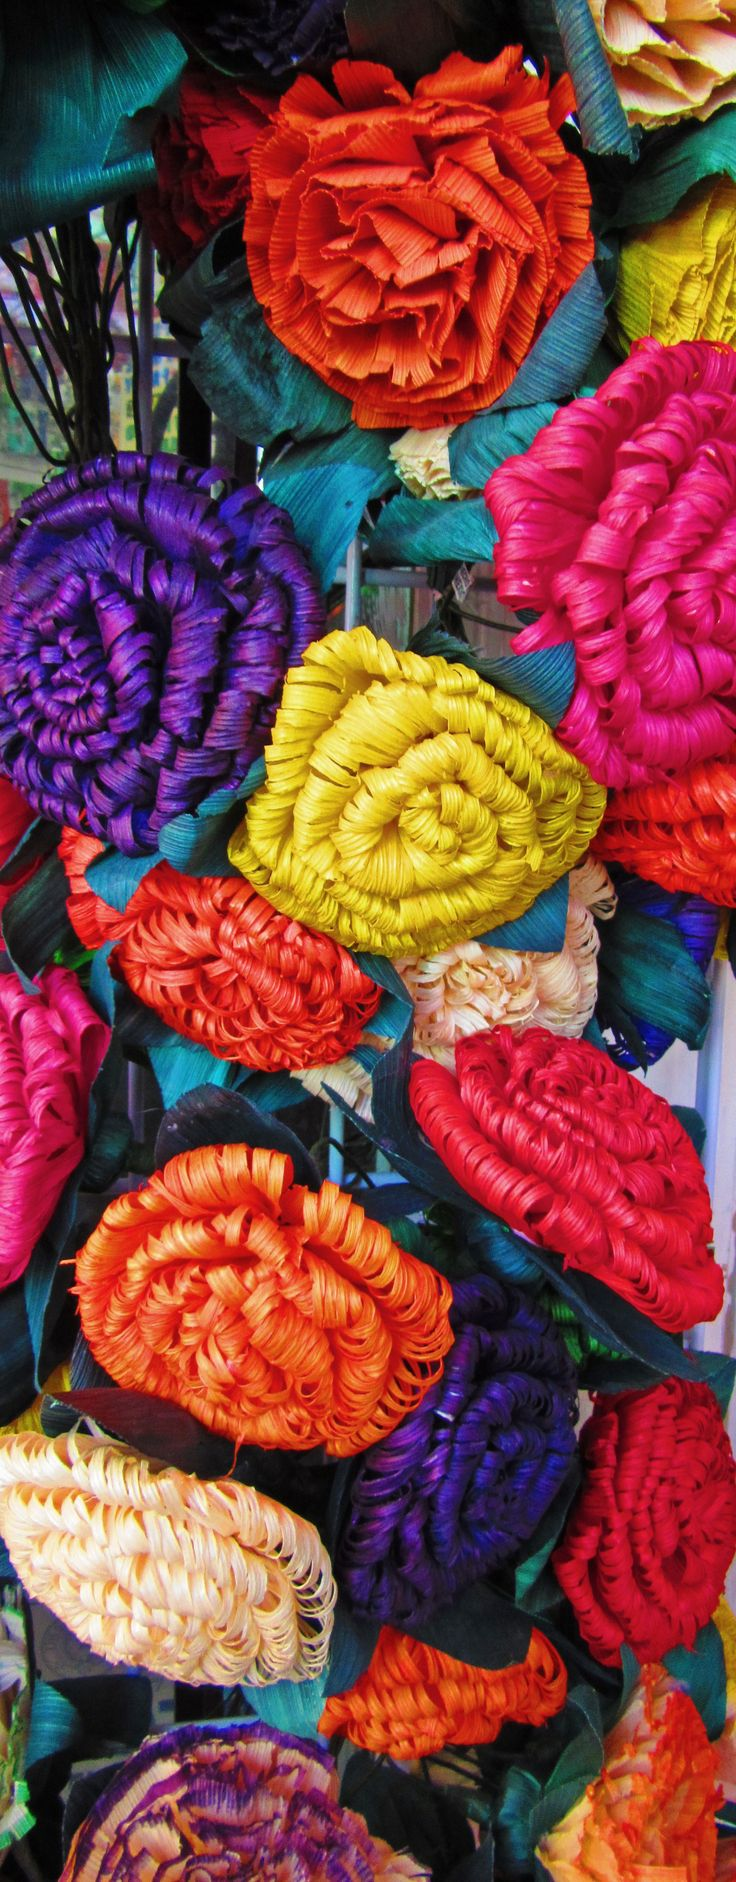 Colourful paper flwoers in the Historic Market Square district in San Antonio, Texas